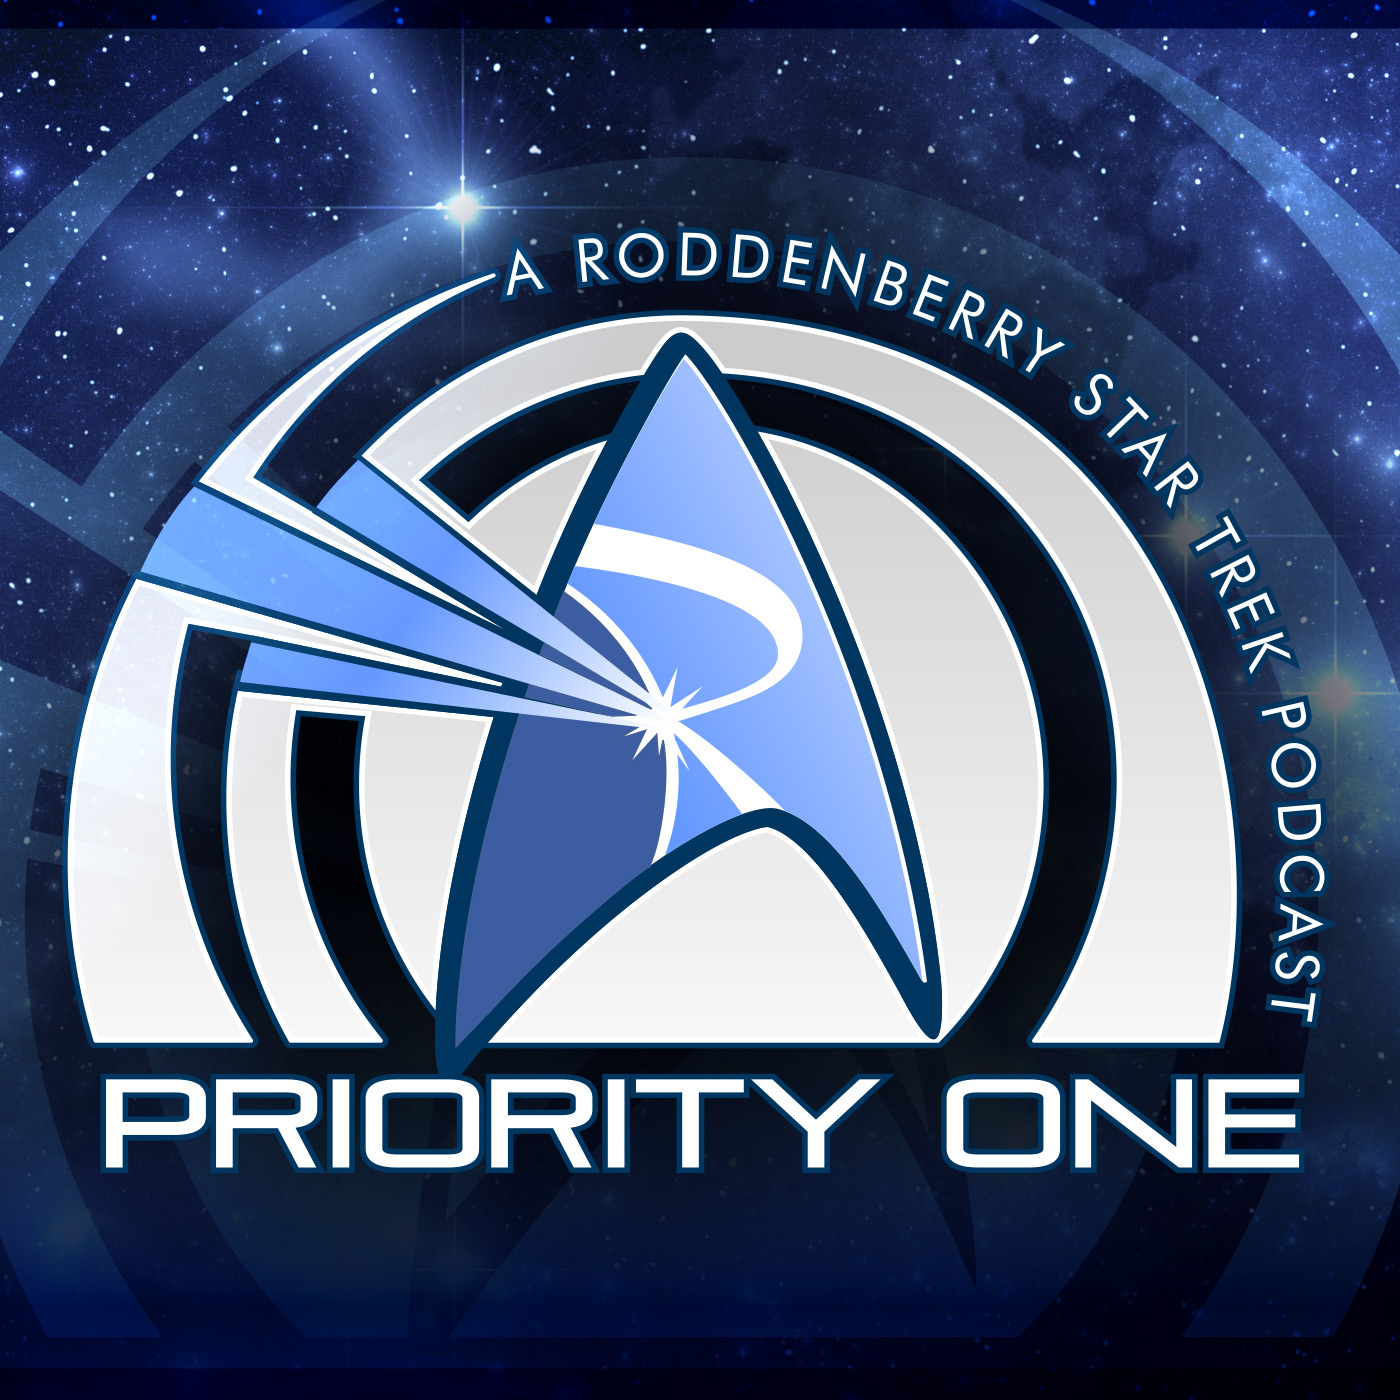 Artwork for 413 - Hail to MaryTheChief | Priority One: A Roddenberry Star Trek Podcast